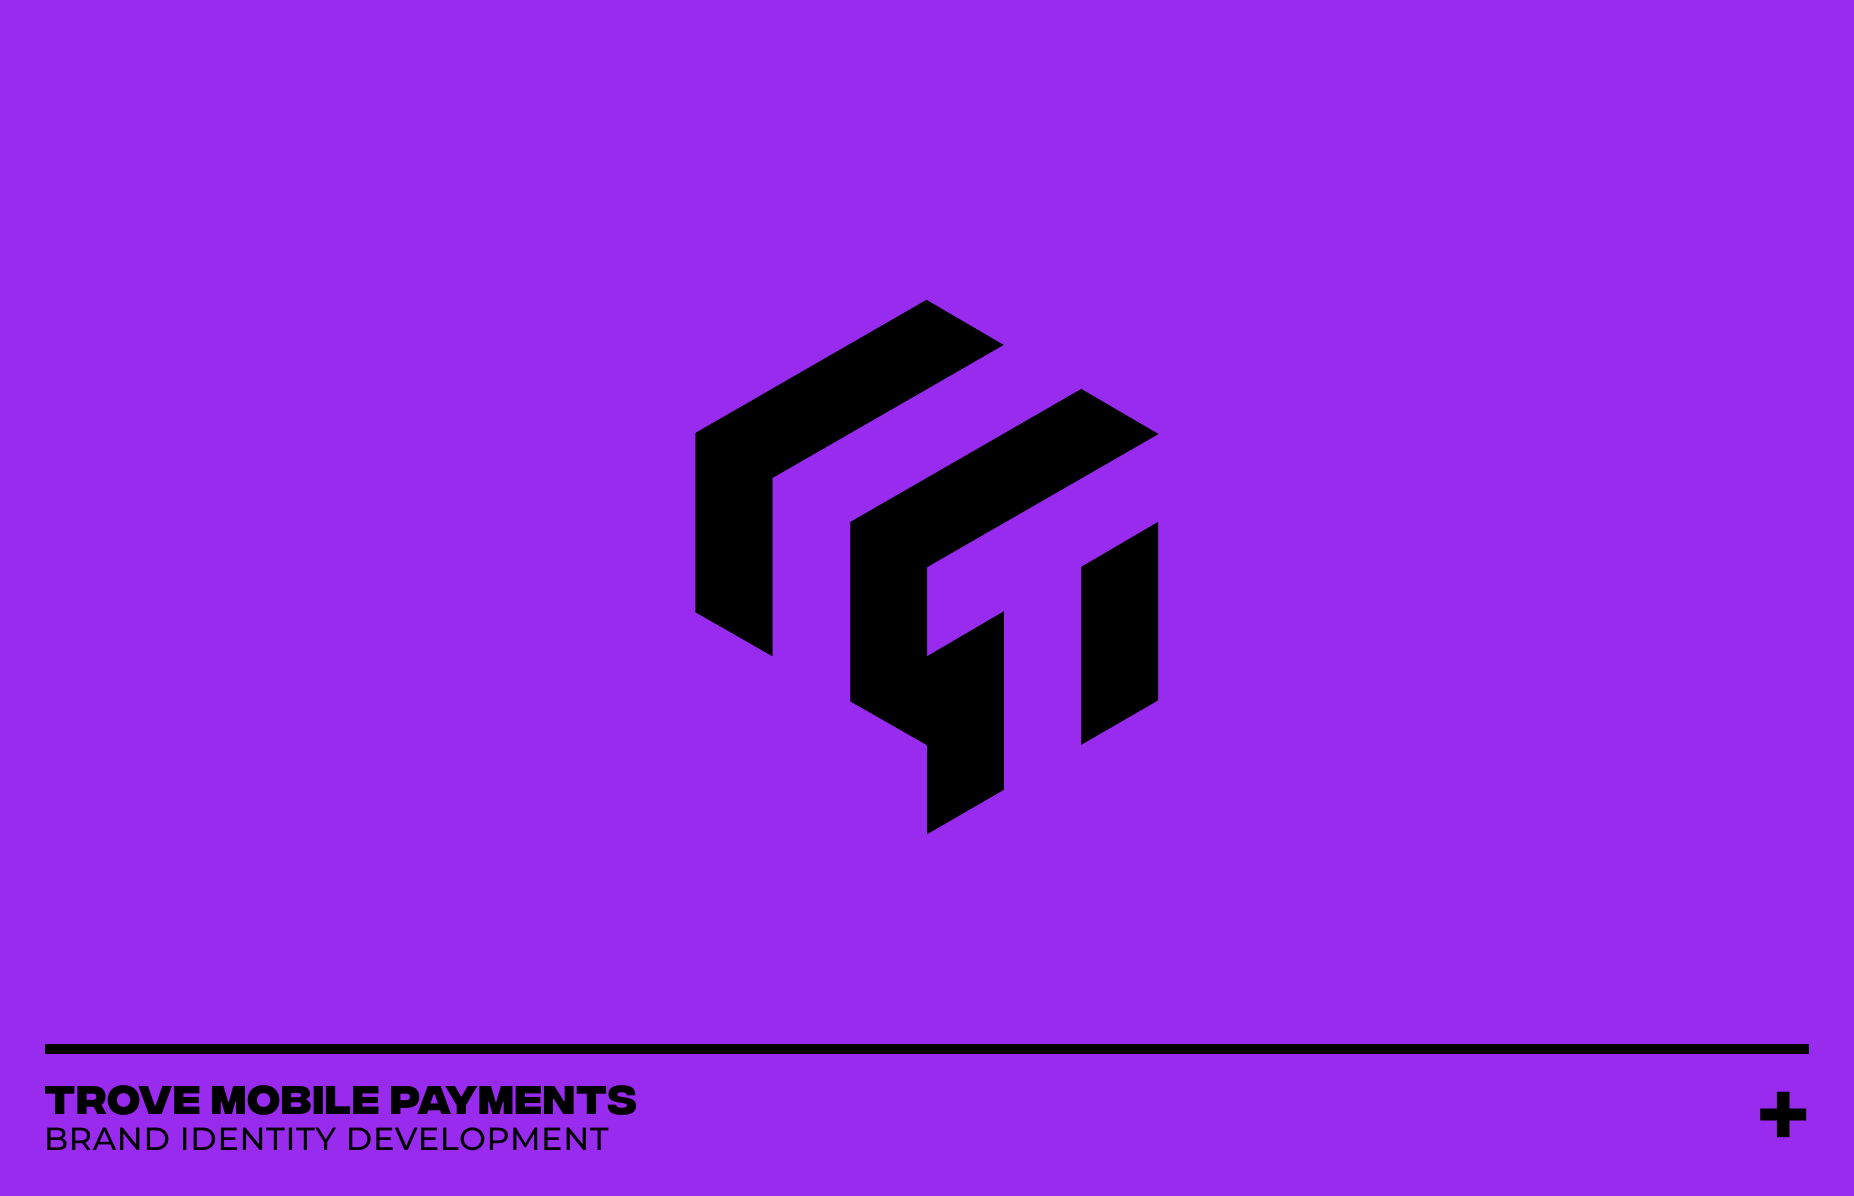 Trove Mobile Payments